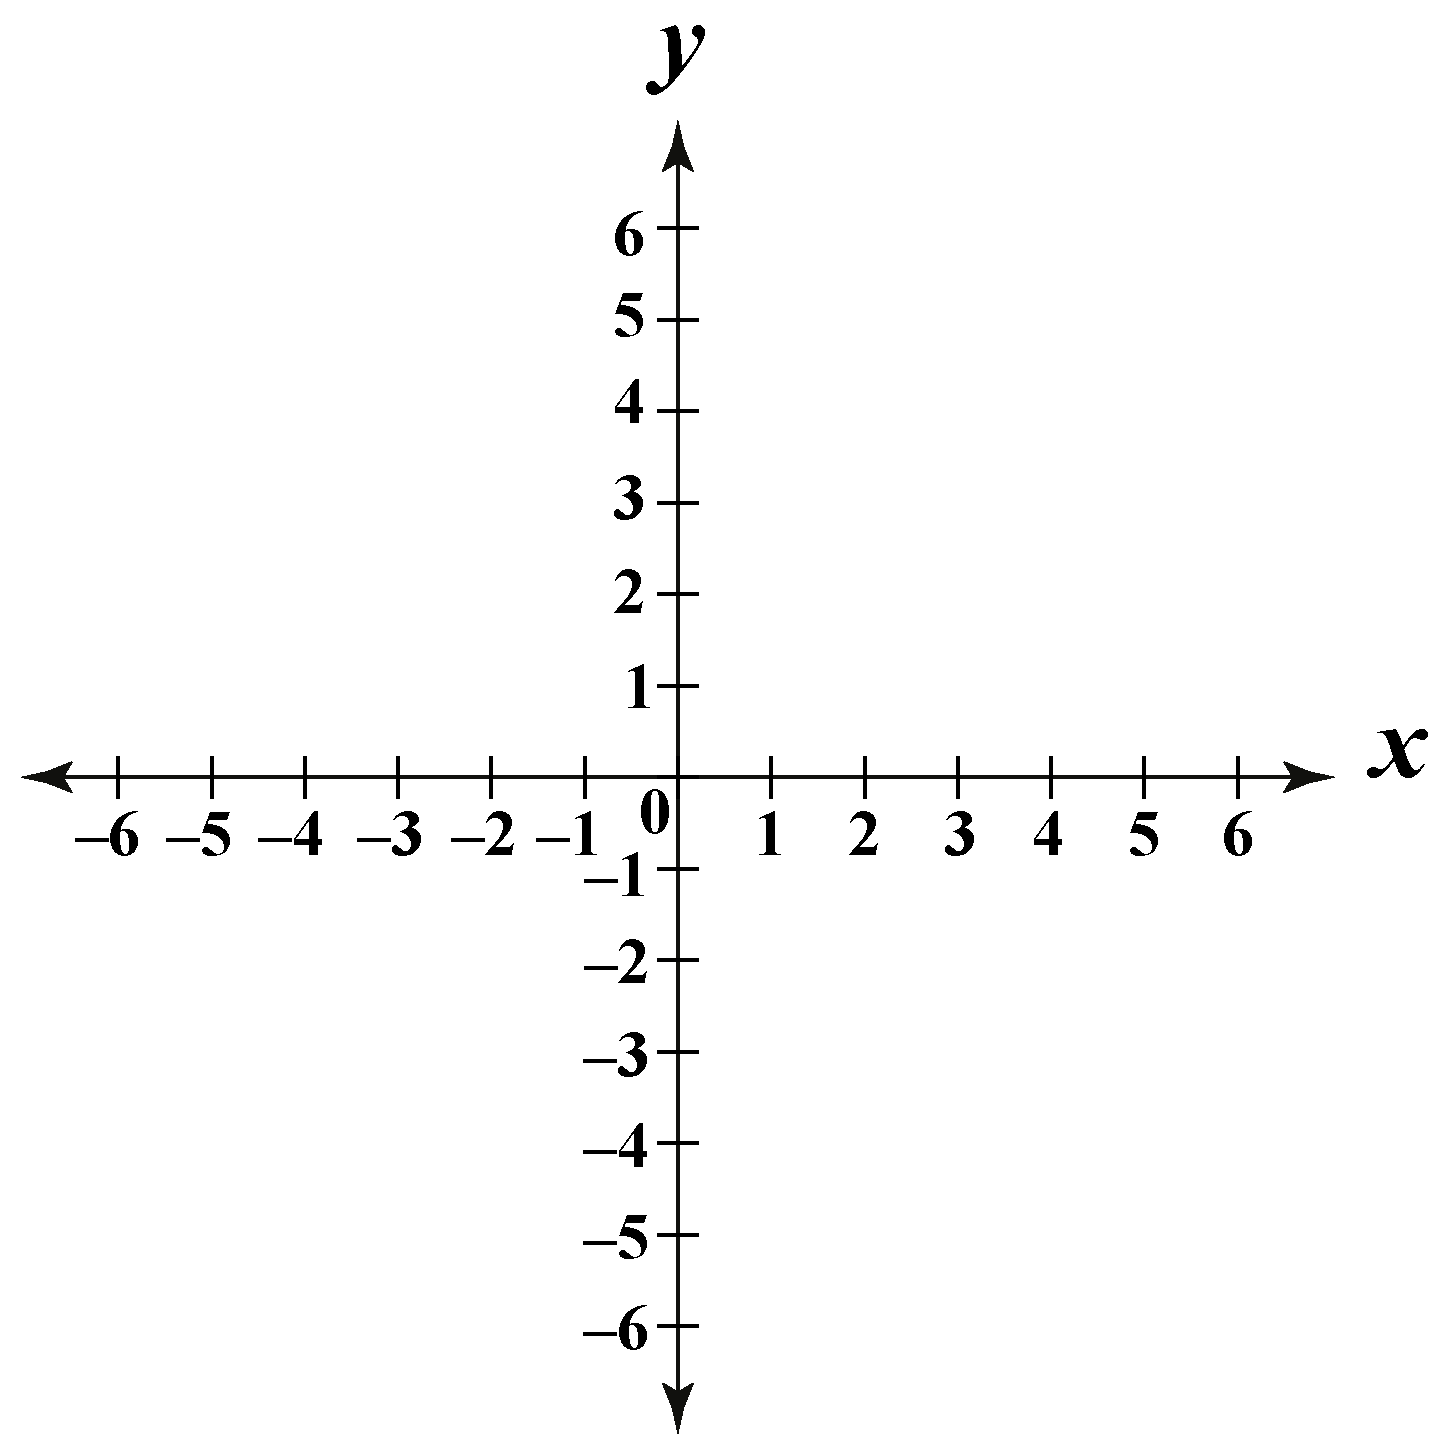 x and y-axis